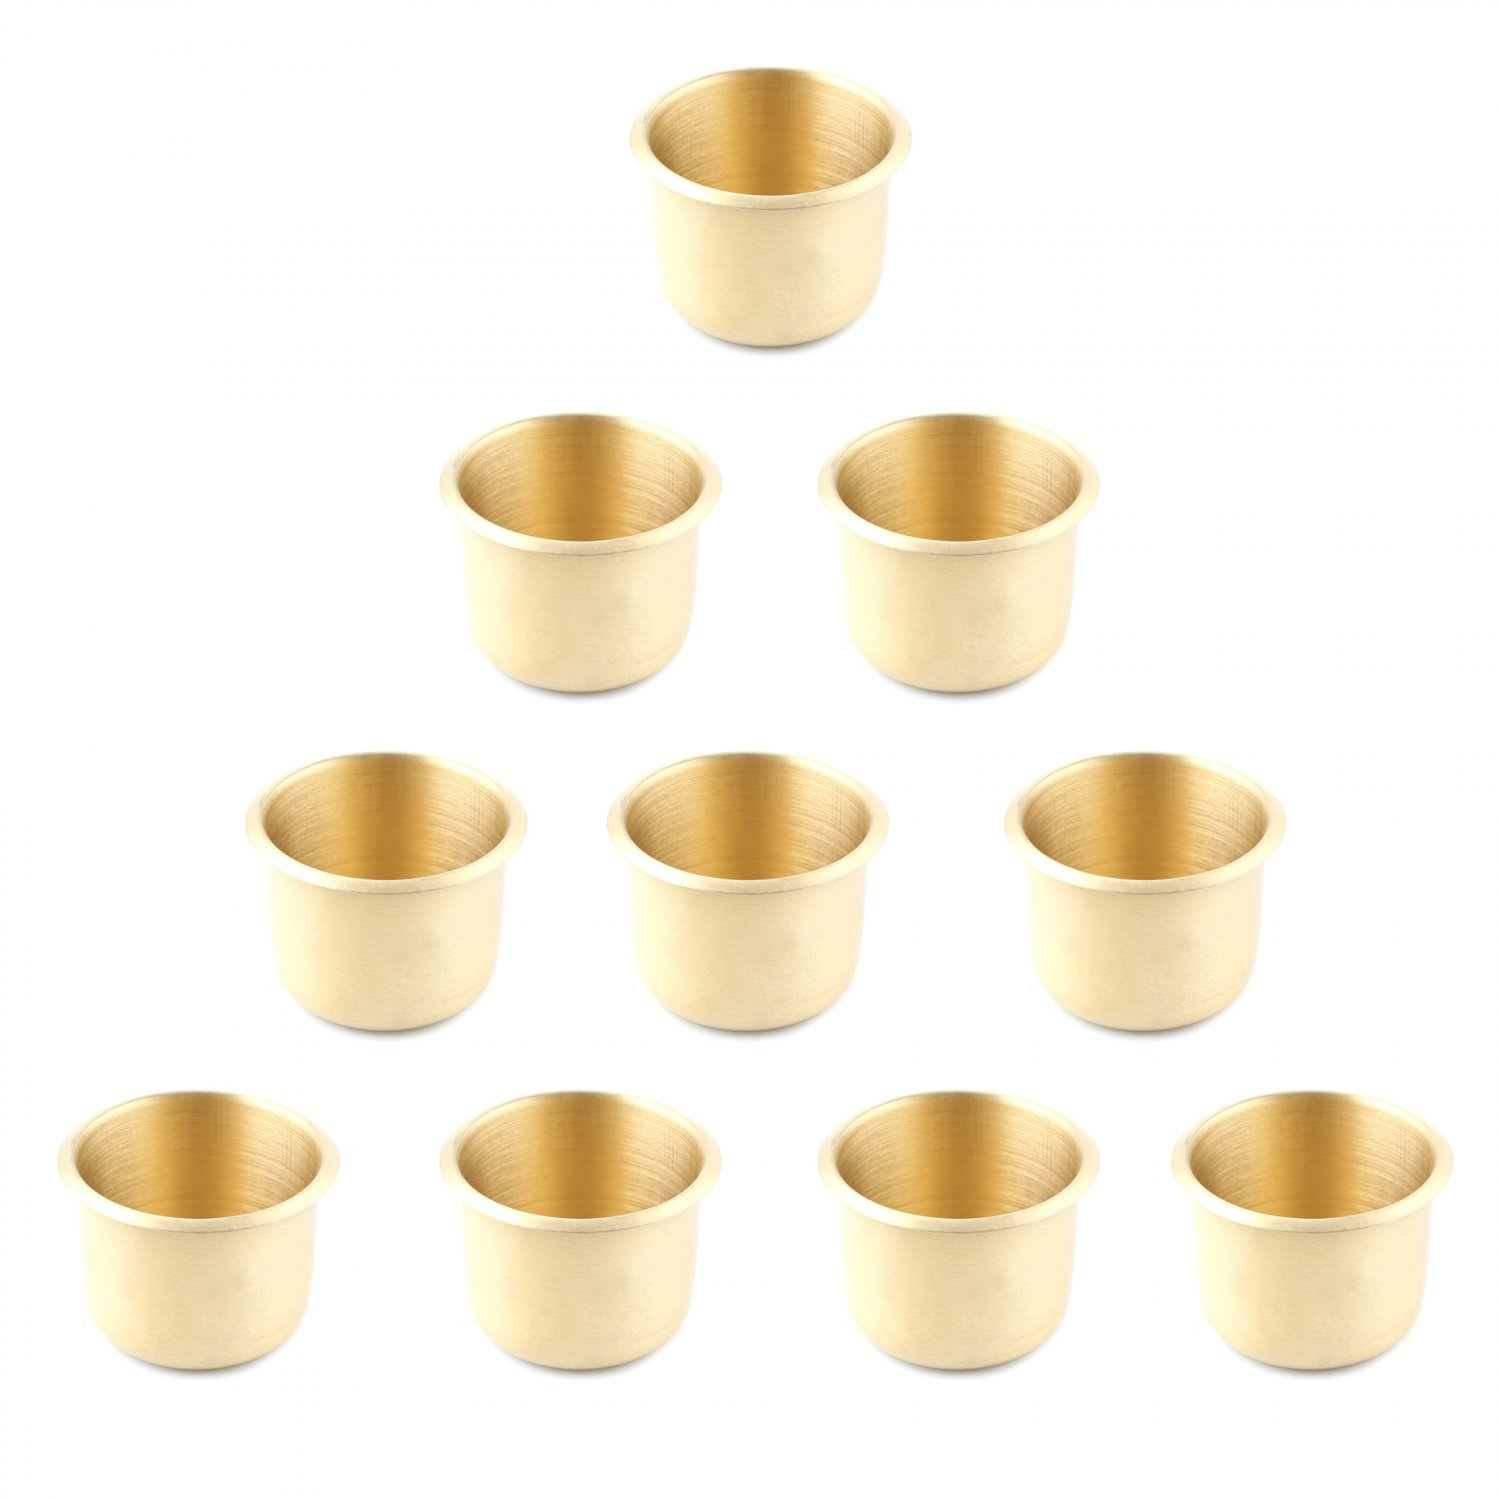 10 x Brass Poker Table Cup Holder Jumbo (Ship US Country Only)#14820x10#